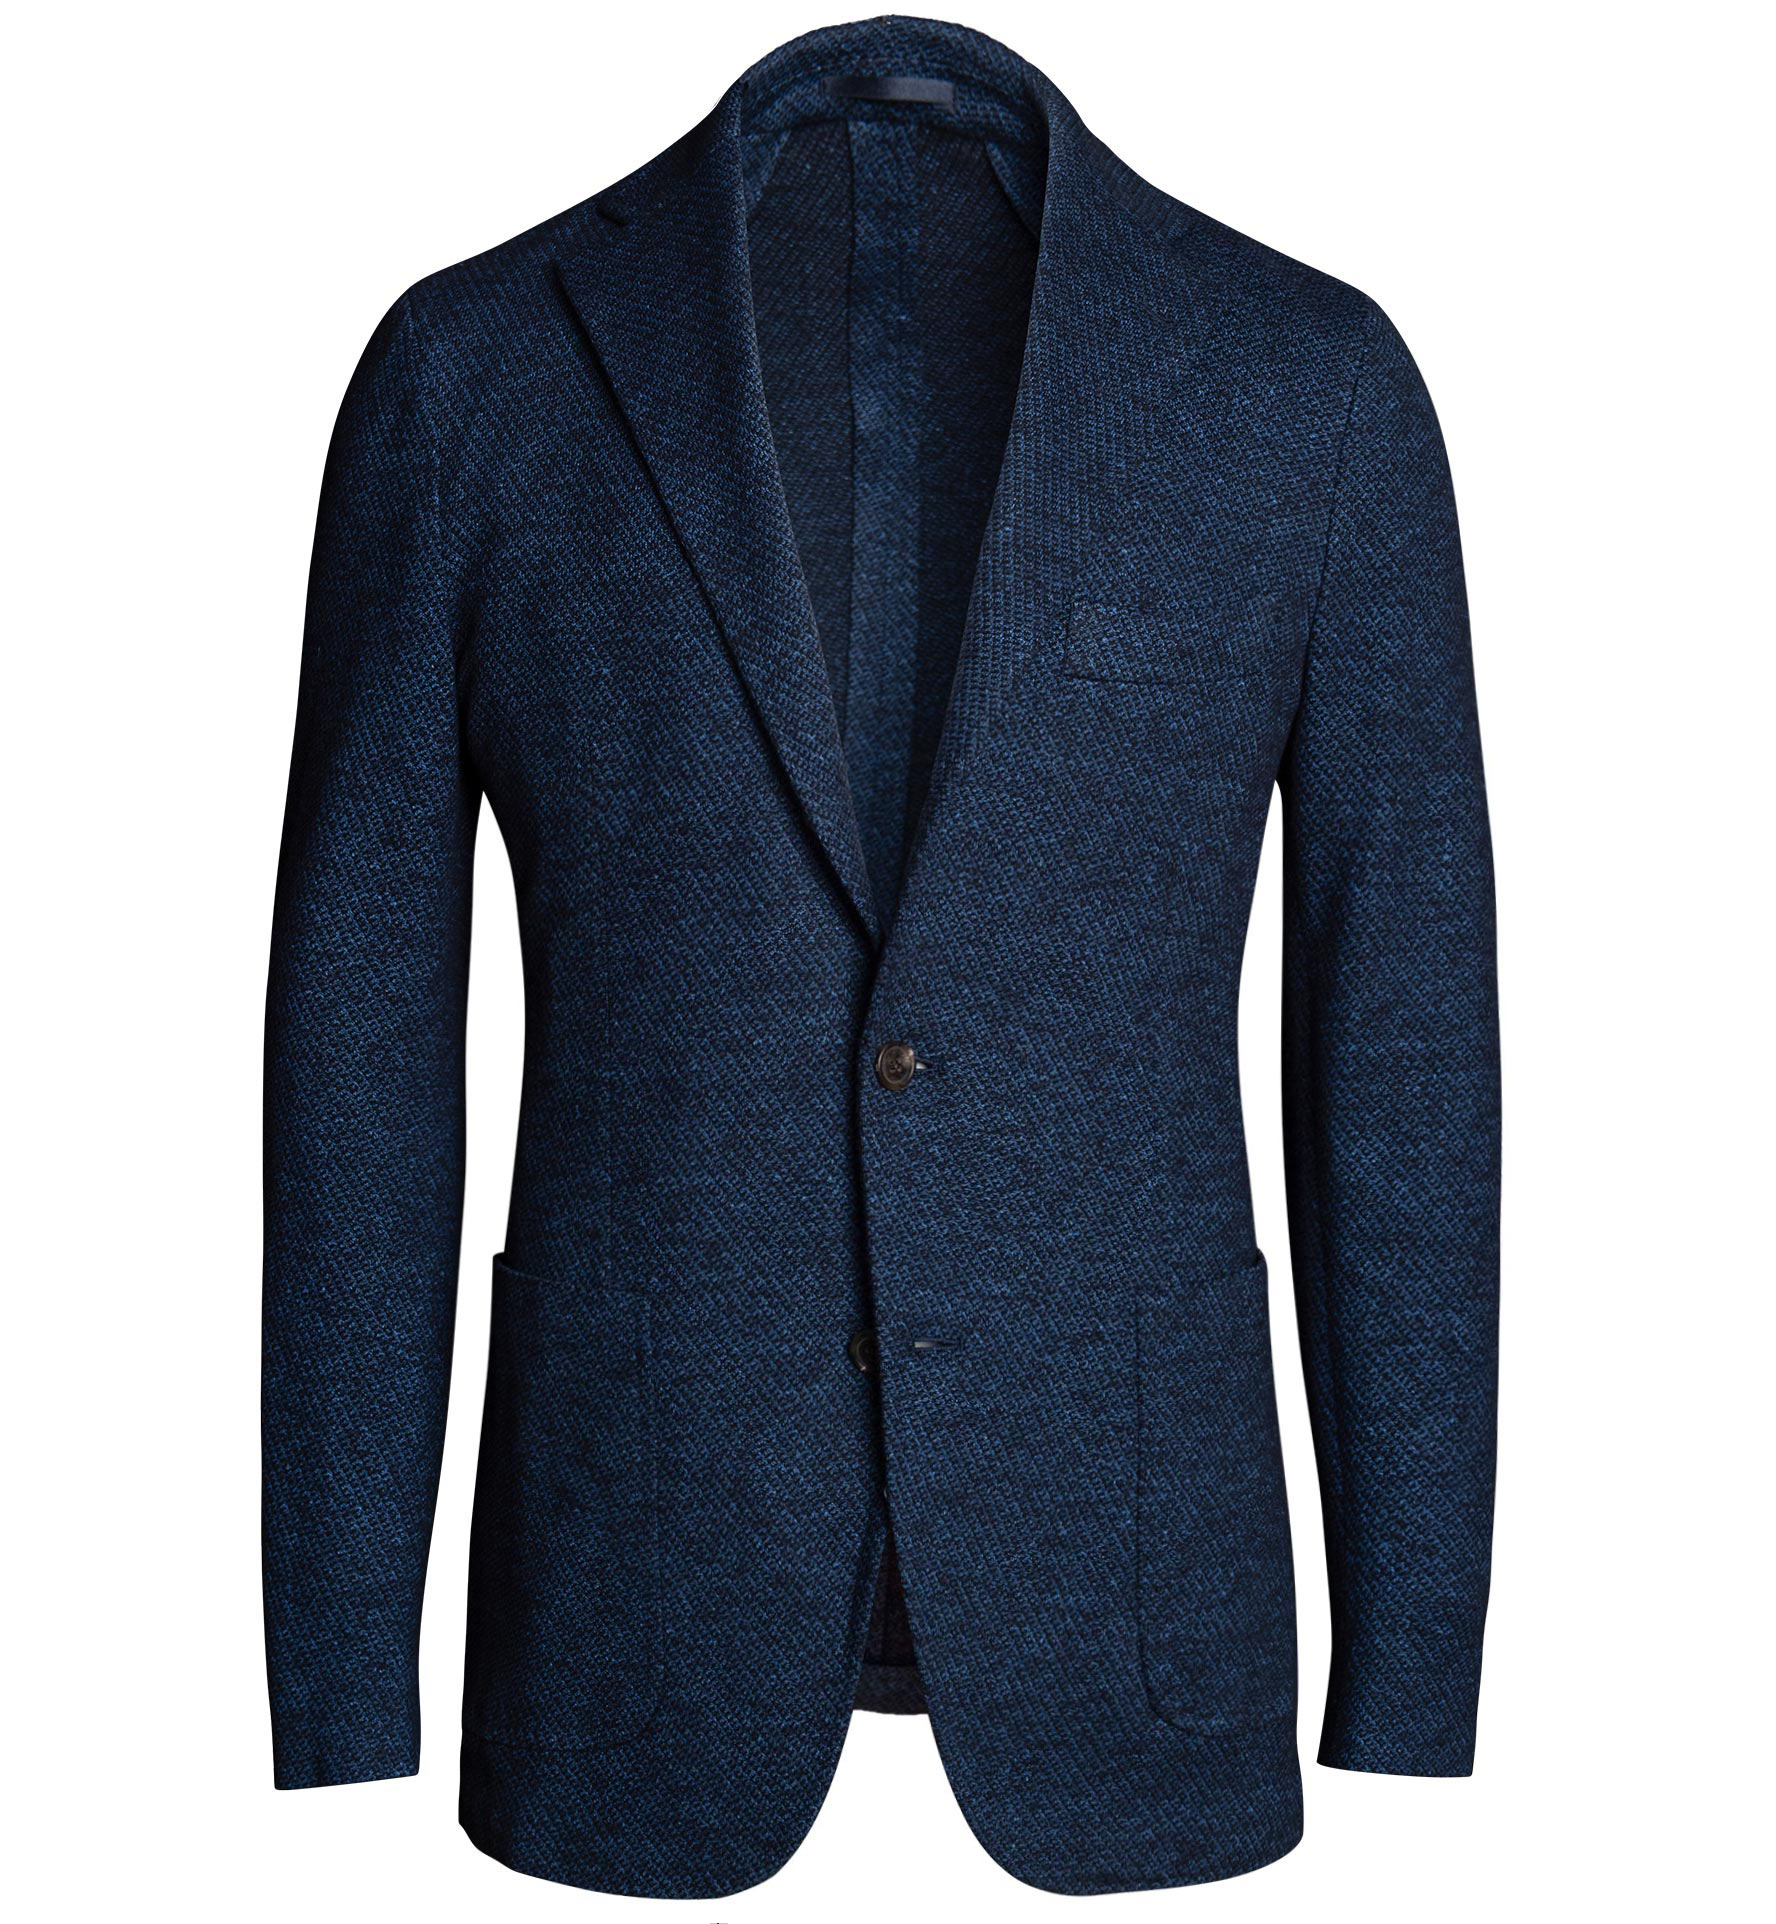 Zoom Image of Waverly Navy Melange Cotton and Linen Knit Jacket